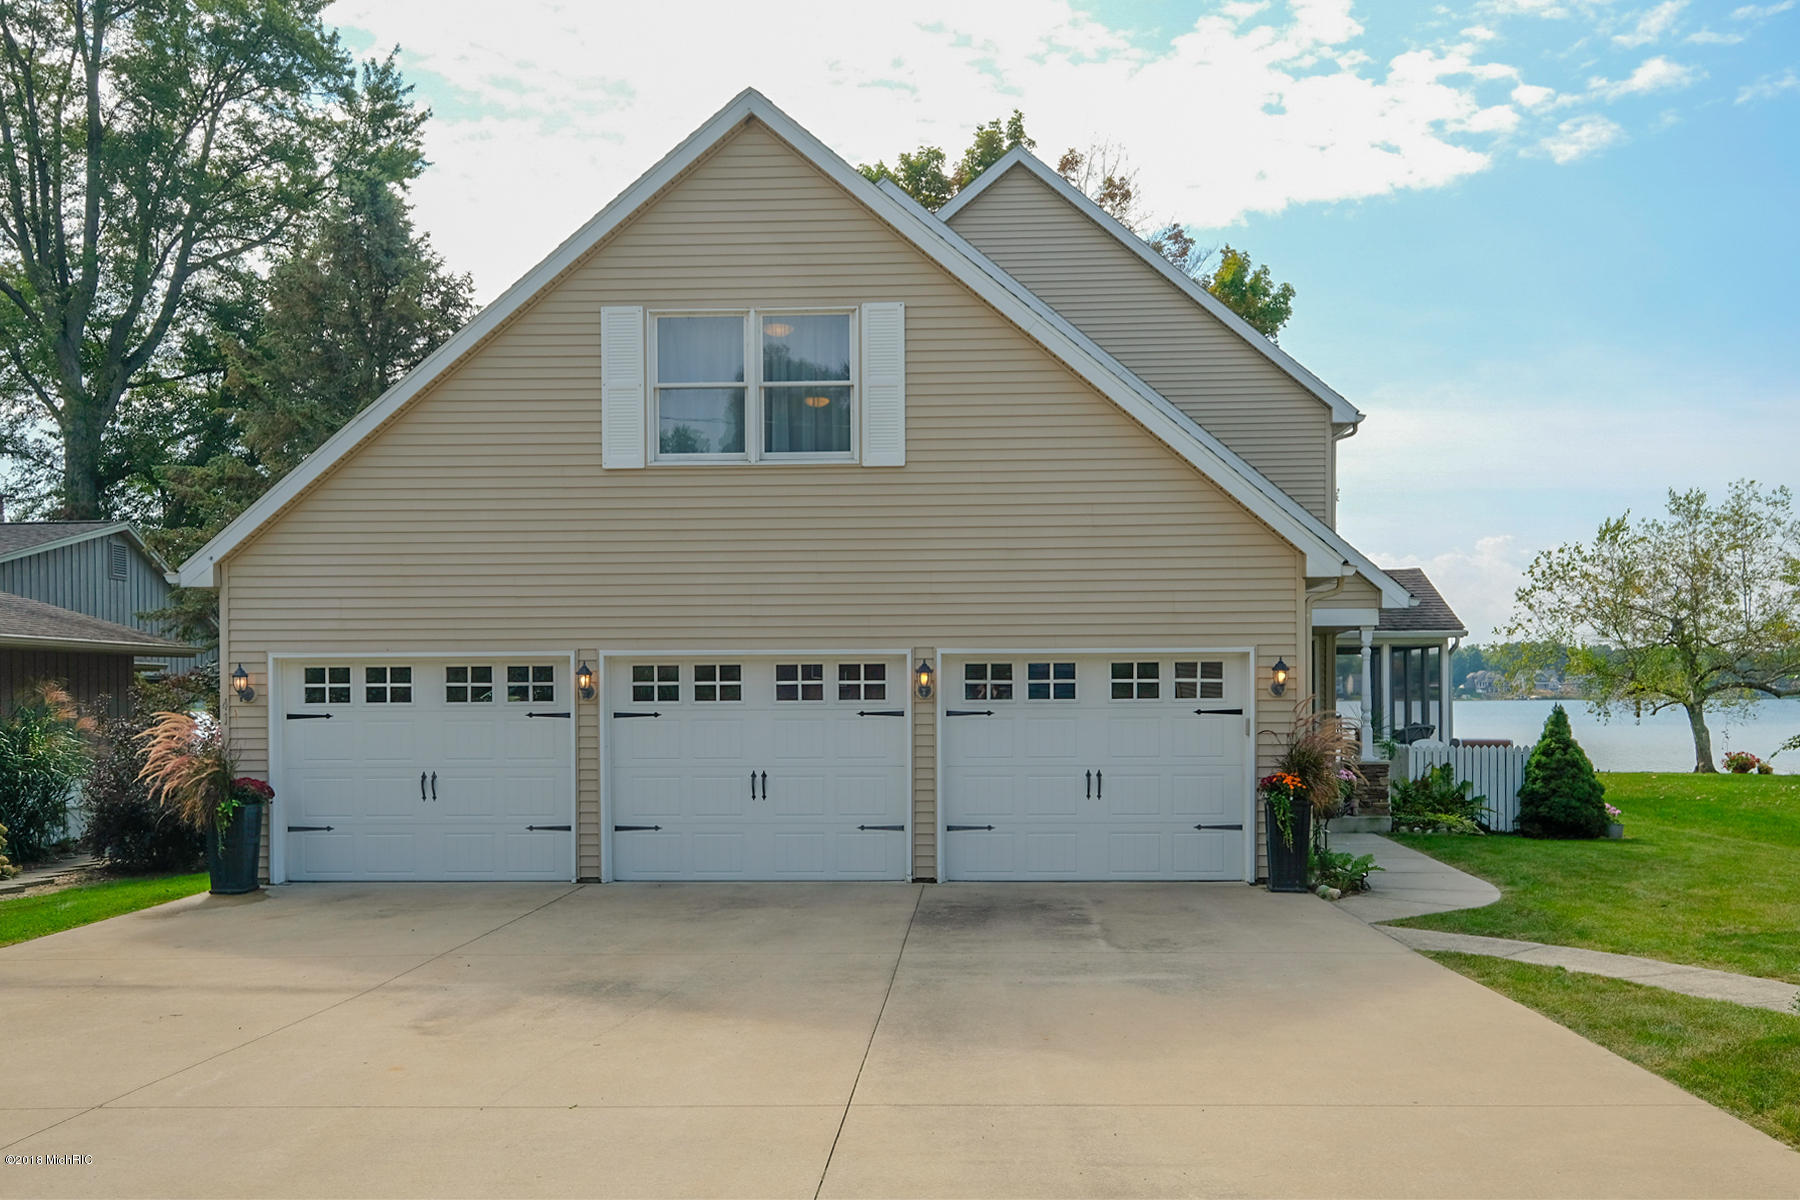 41 N Crooked Lake , Kalamazoo, MI 49009 Photo 41